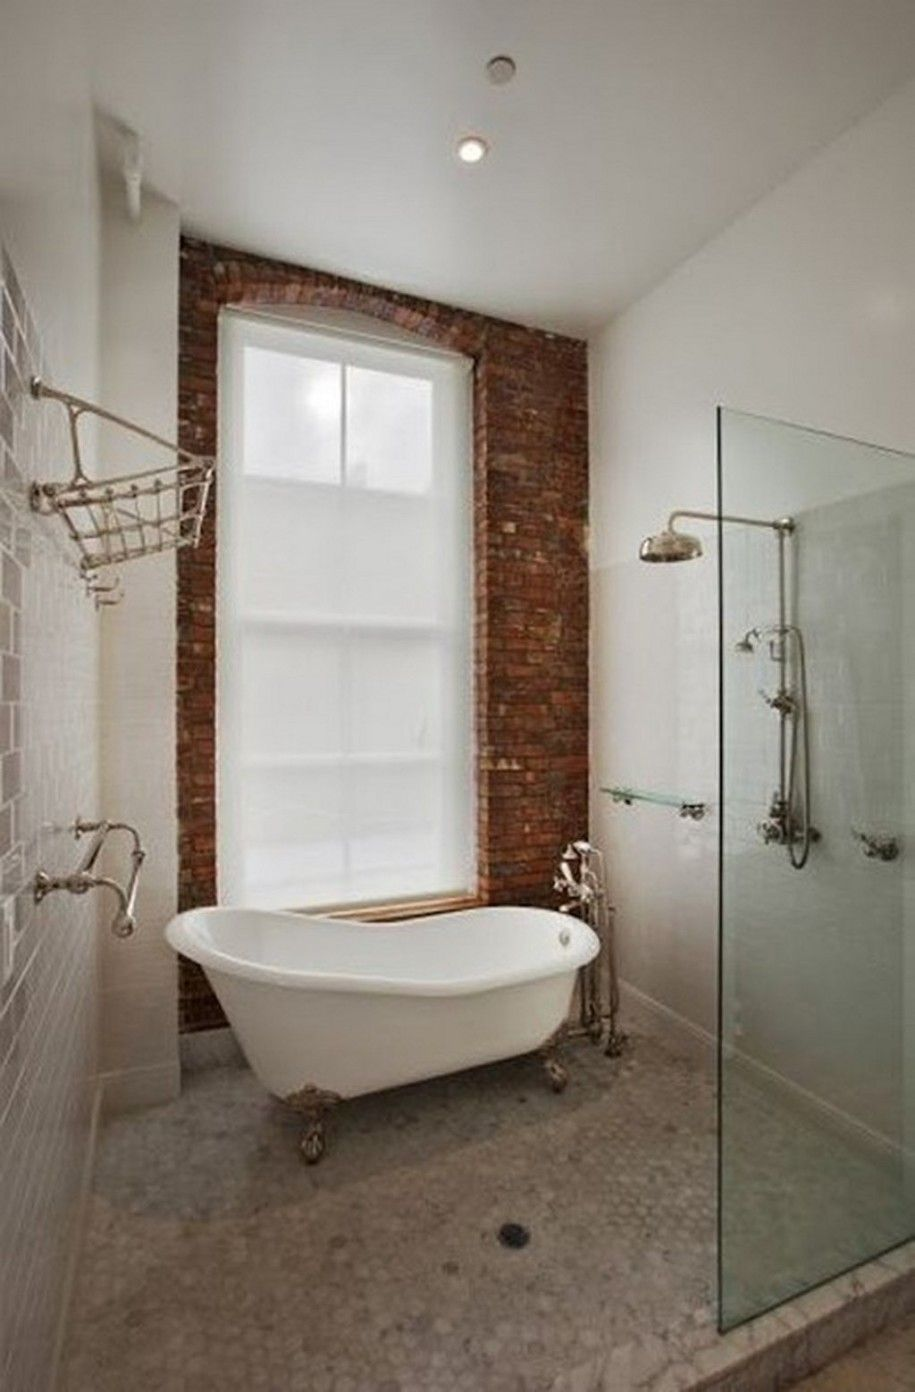 Best Tubs For Small Bathrooms Rukinet – Bathtubs for Small Bathrooms